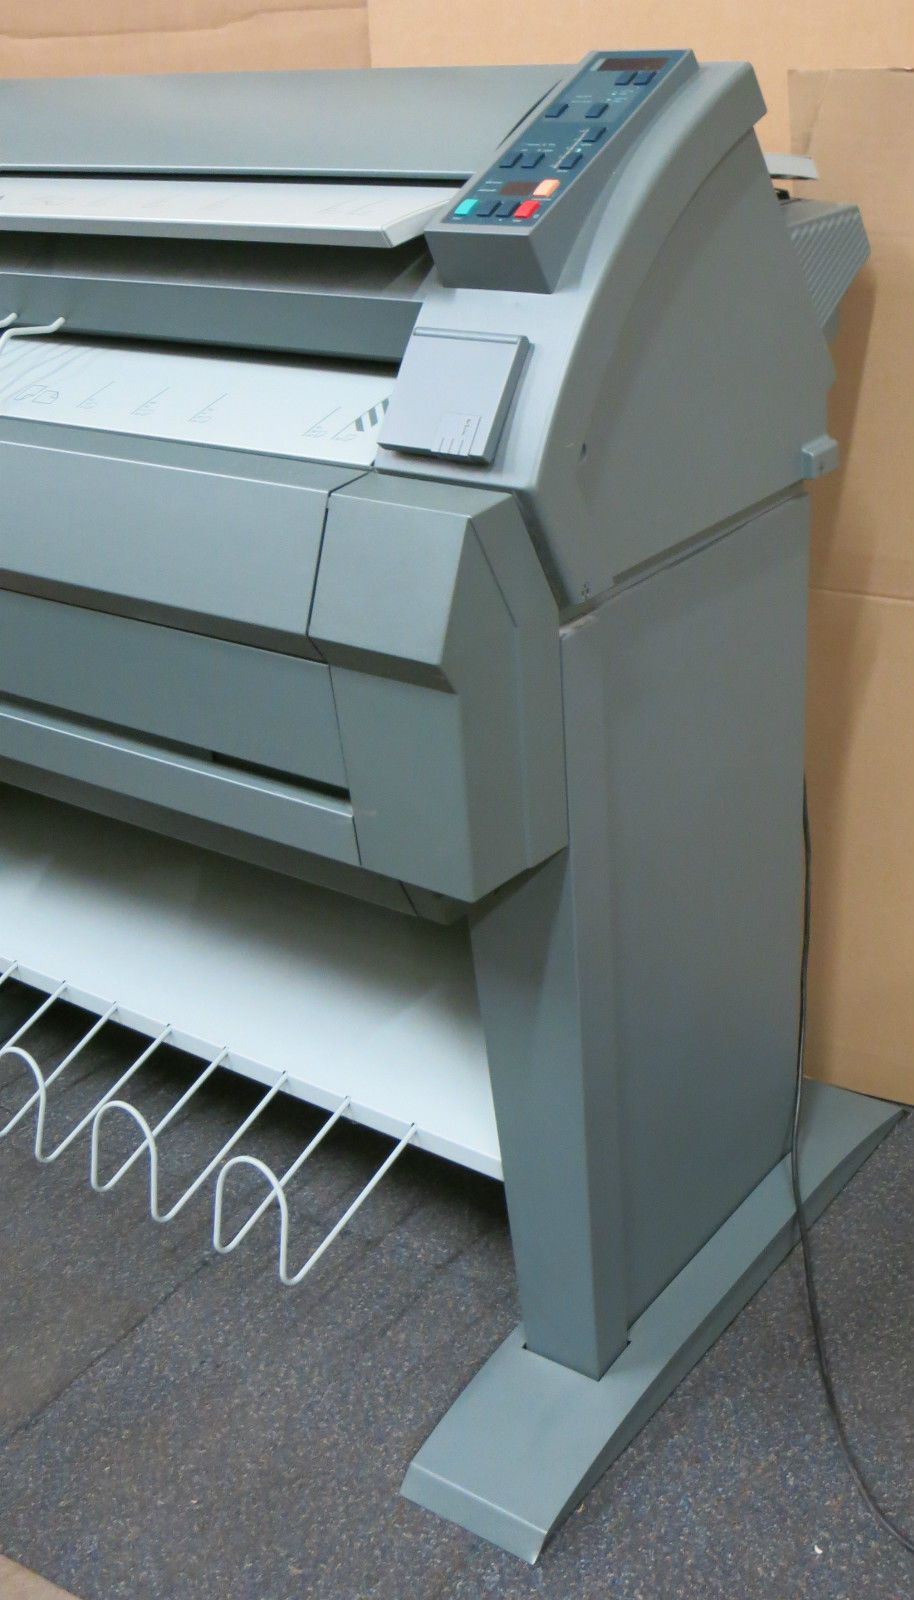 ... Oce 7055 A0 A1 A2 Plan Large Wide Format Copier Printer, Stand & Print  Collector ...